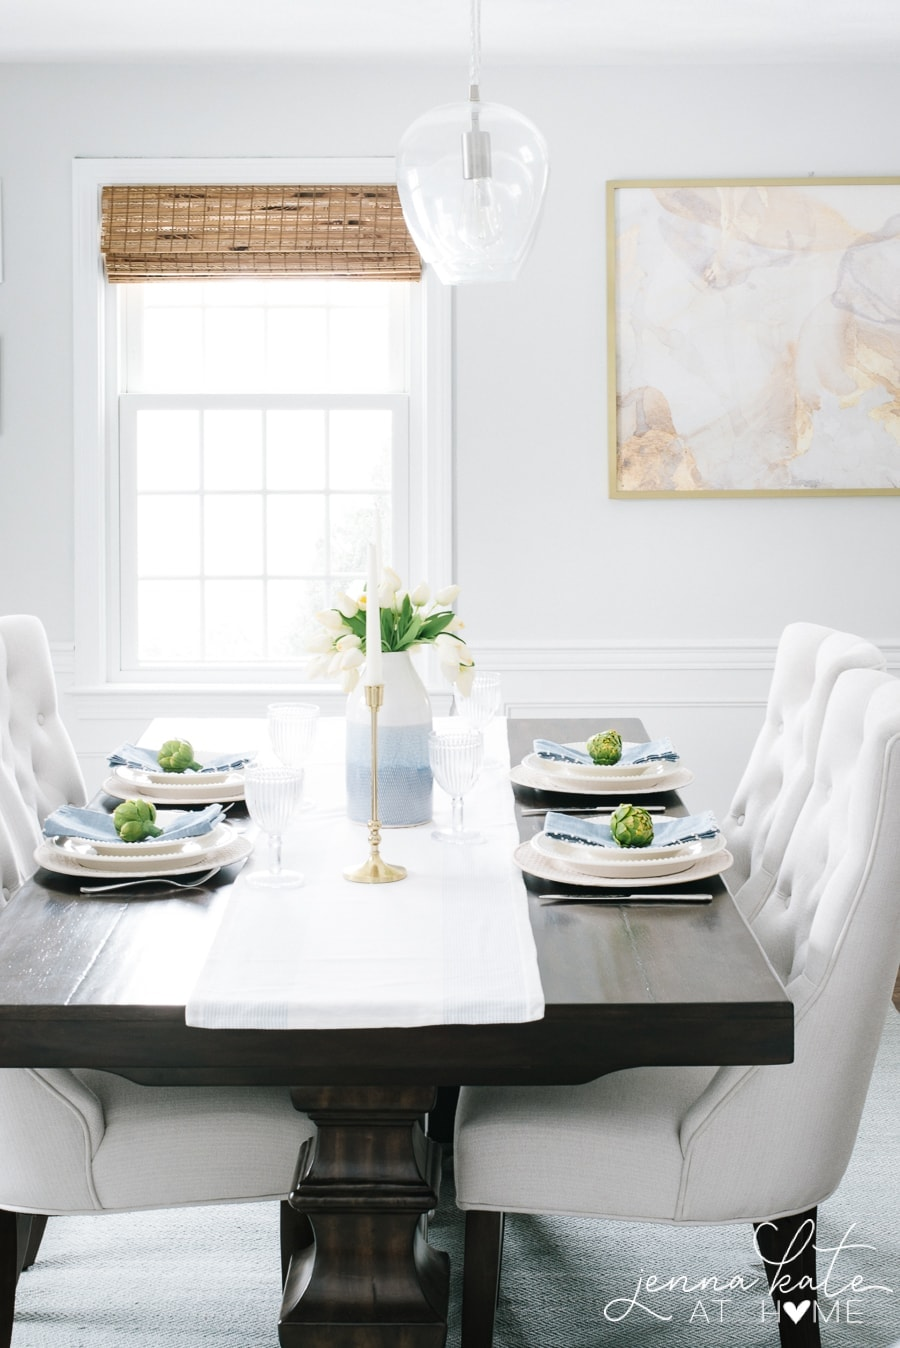 Spring table setting color palette of white, pastel blue and bright green